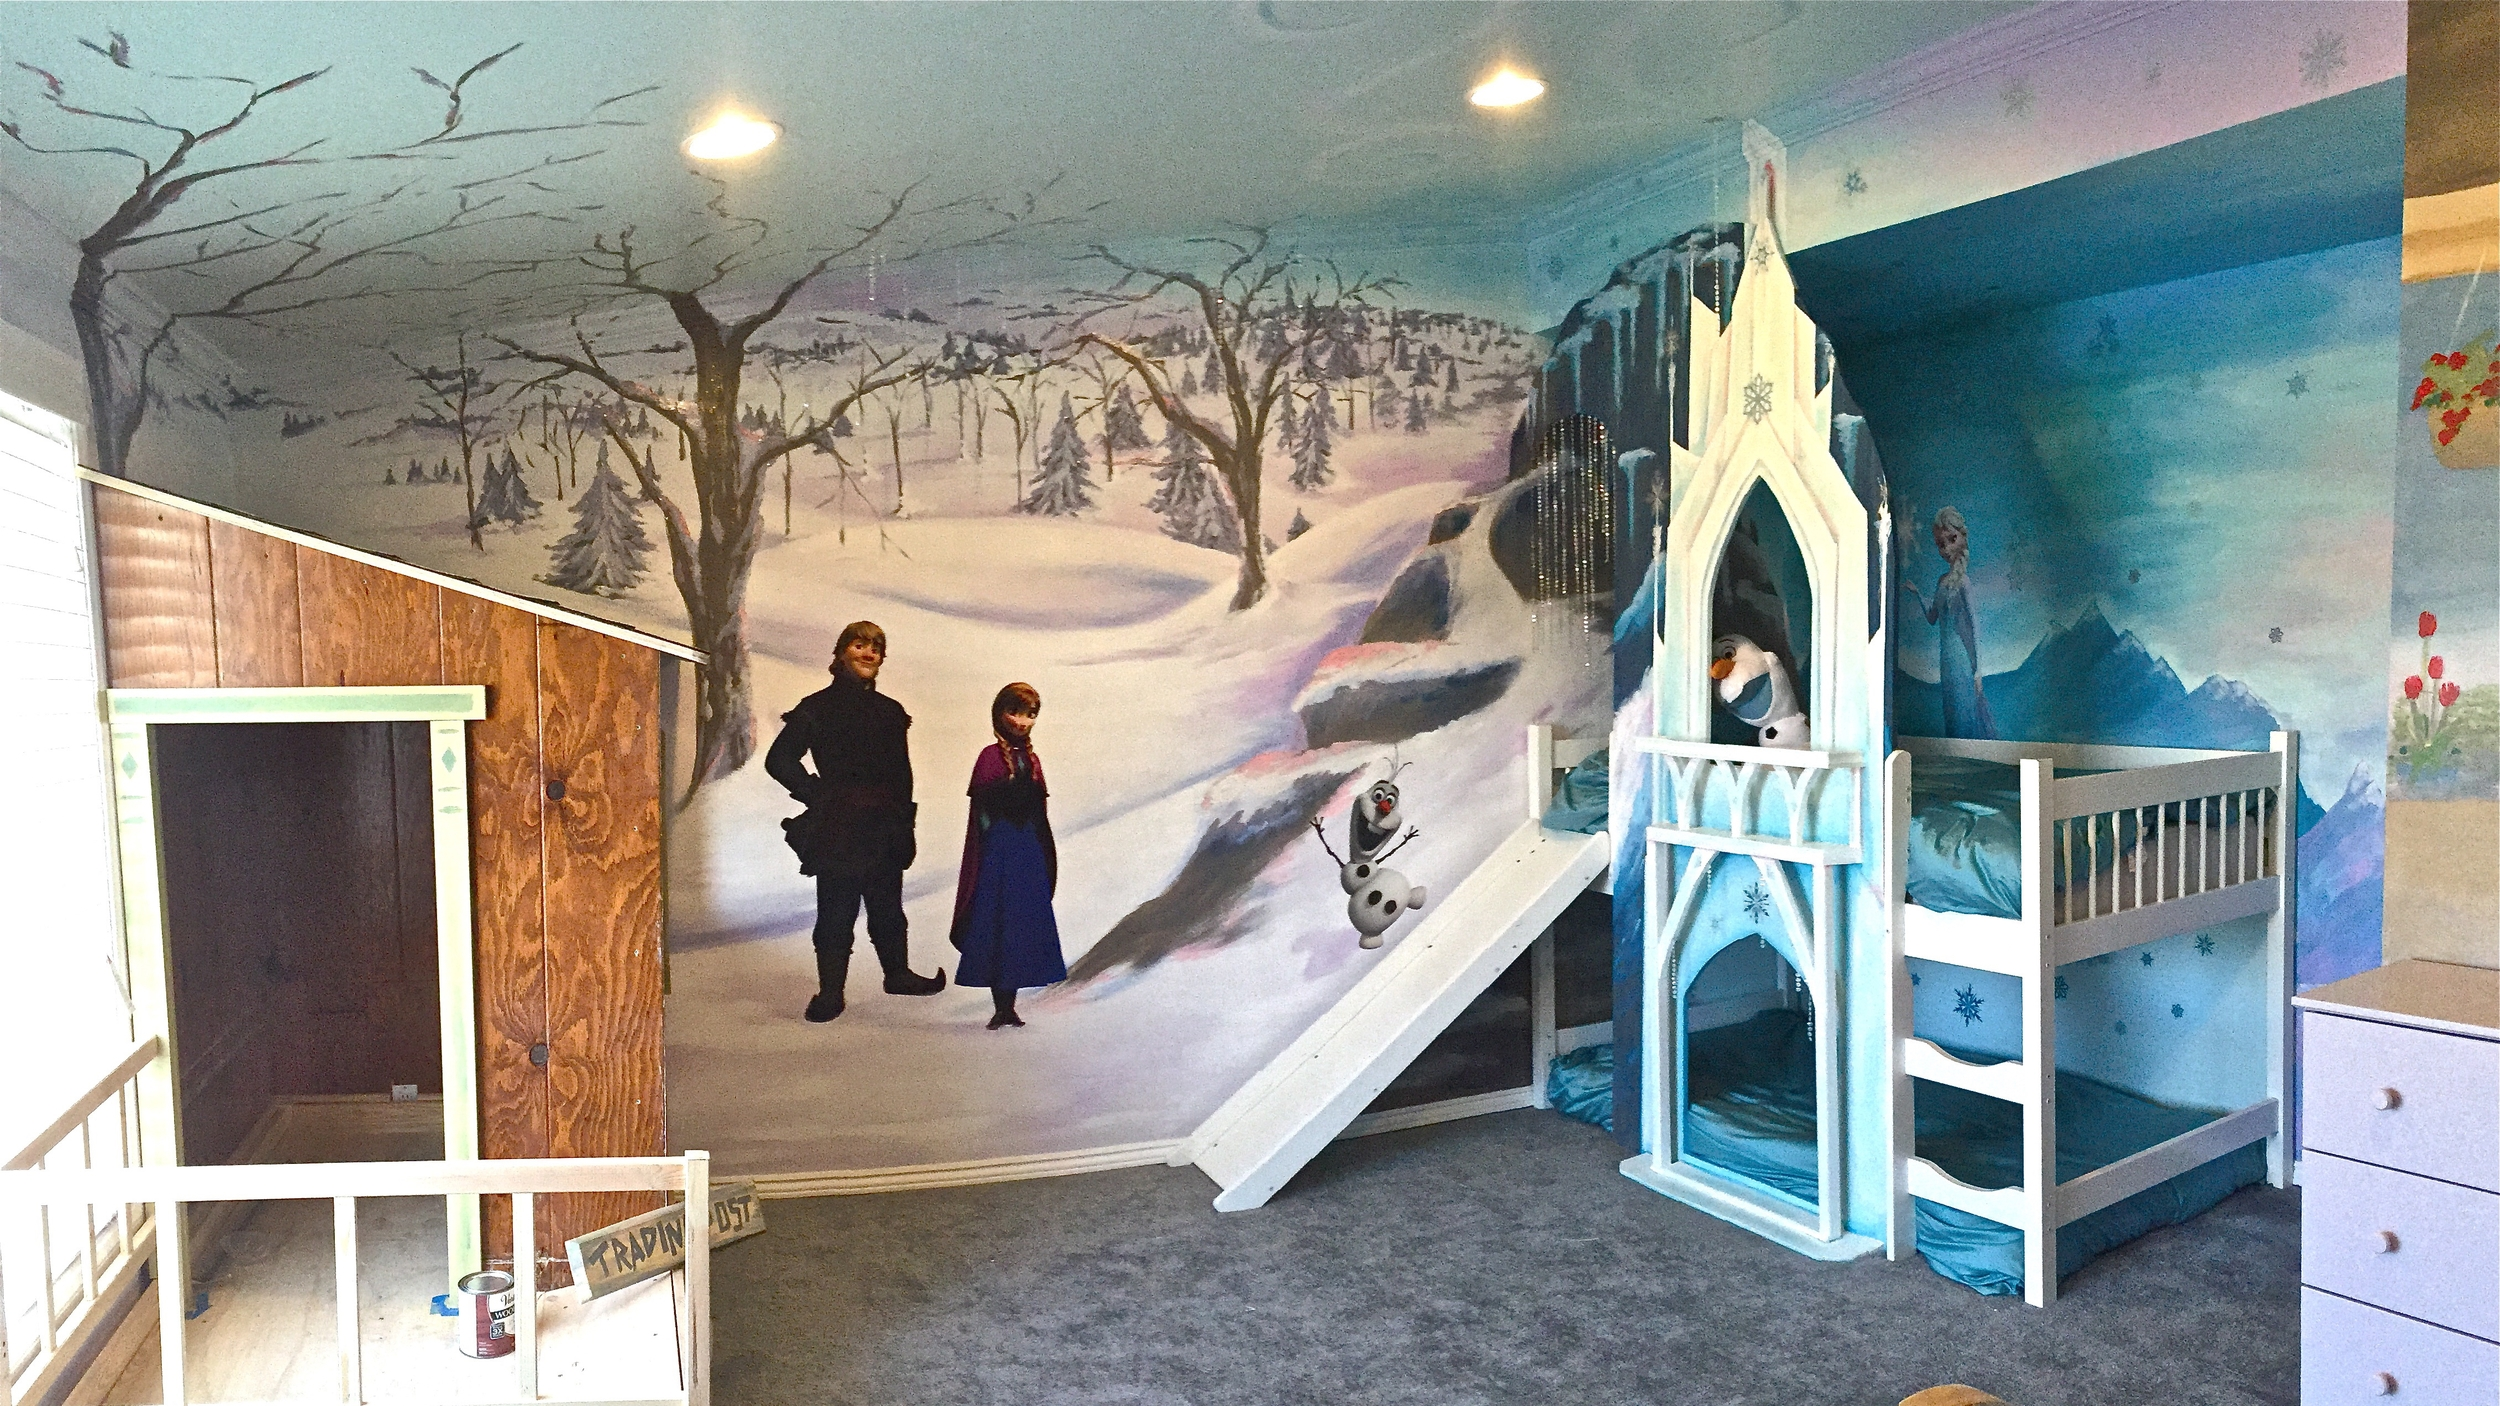 Disney FROZEN Themed Interactive Playspace with Bunk Beds and Mural